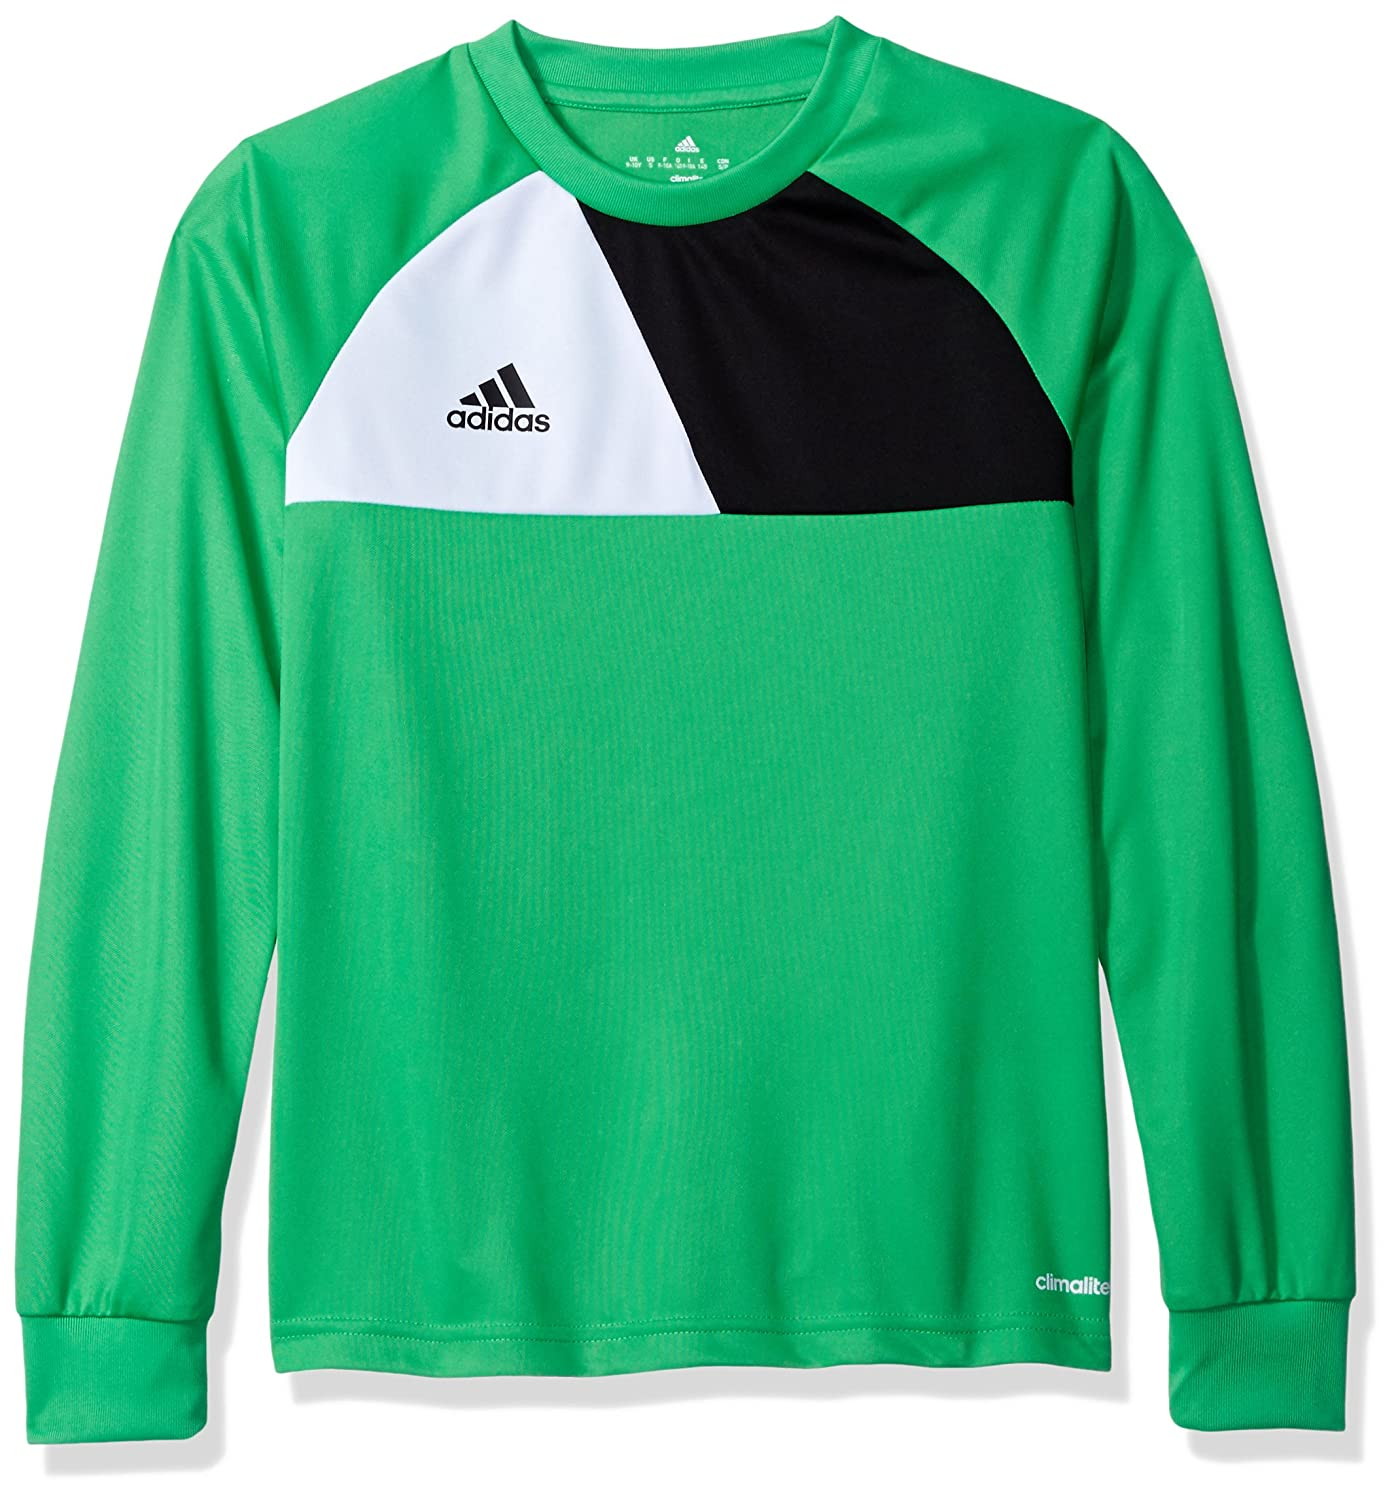 706c7c73b Command attention on and off the pitch in this junior Boys\' football  Goalkeeper jersey. It\'s made with soft, moisture-wicking fabric for dry  comfort.